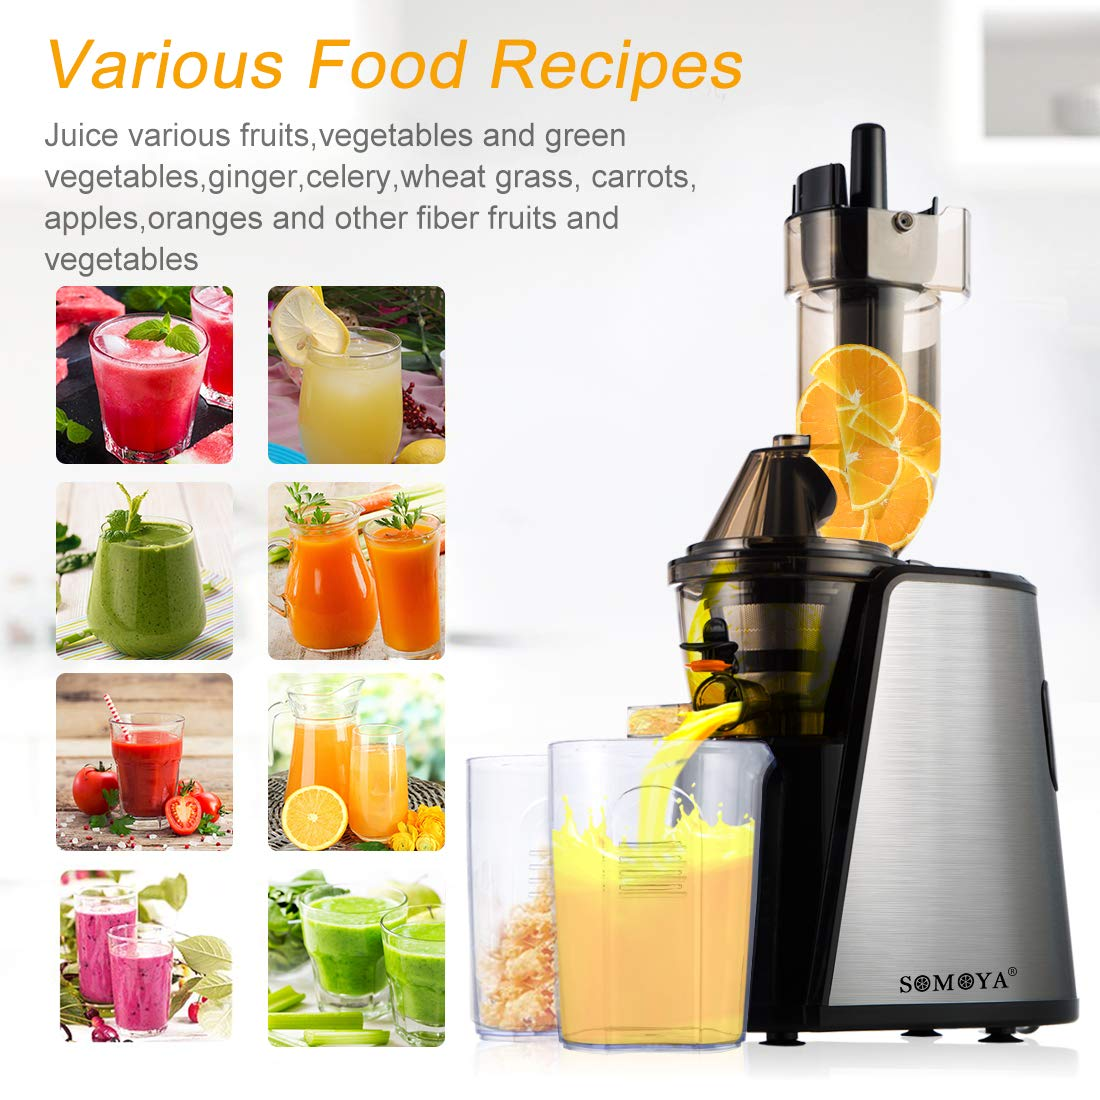 BPA-Free,Anti-drip,Non-slip feet Juicer Extractors Juicer SOMOYA 2019 Juicer/Electric Orange Juicer/Machines Easy to Clean,800W High Speed Stainless Steel Juicer Extract Fresh Vegetables and Fruits 110V 60Hz